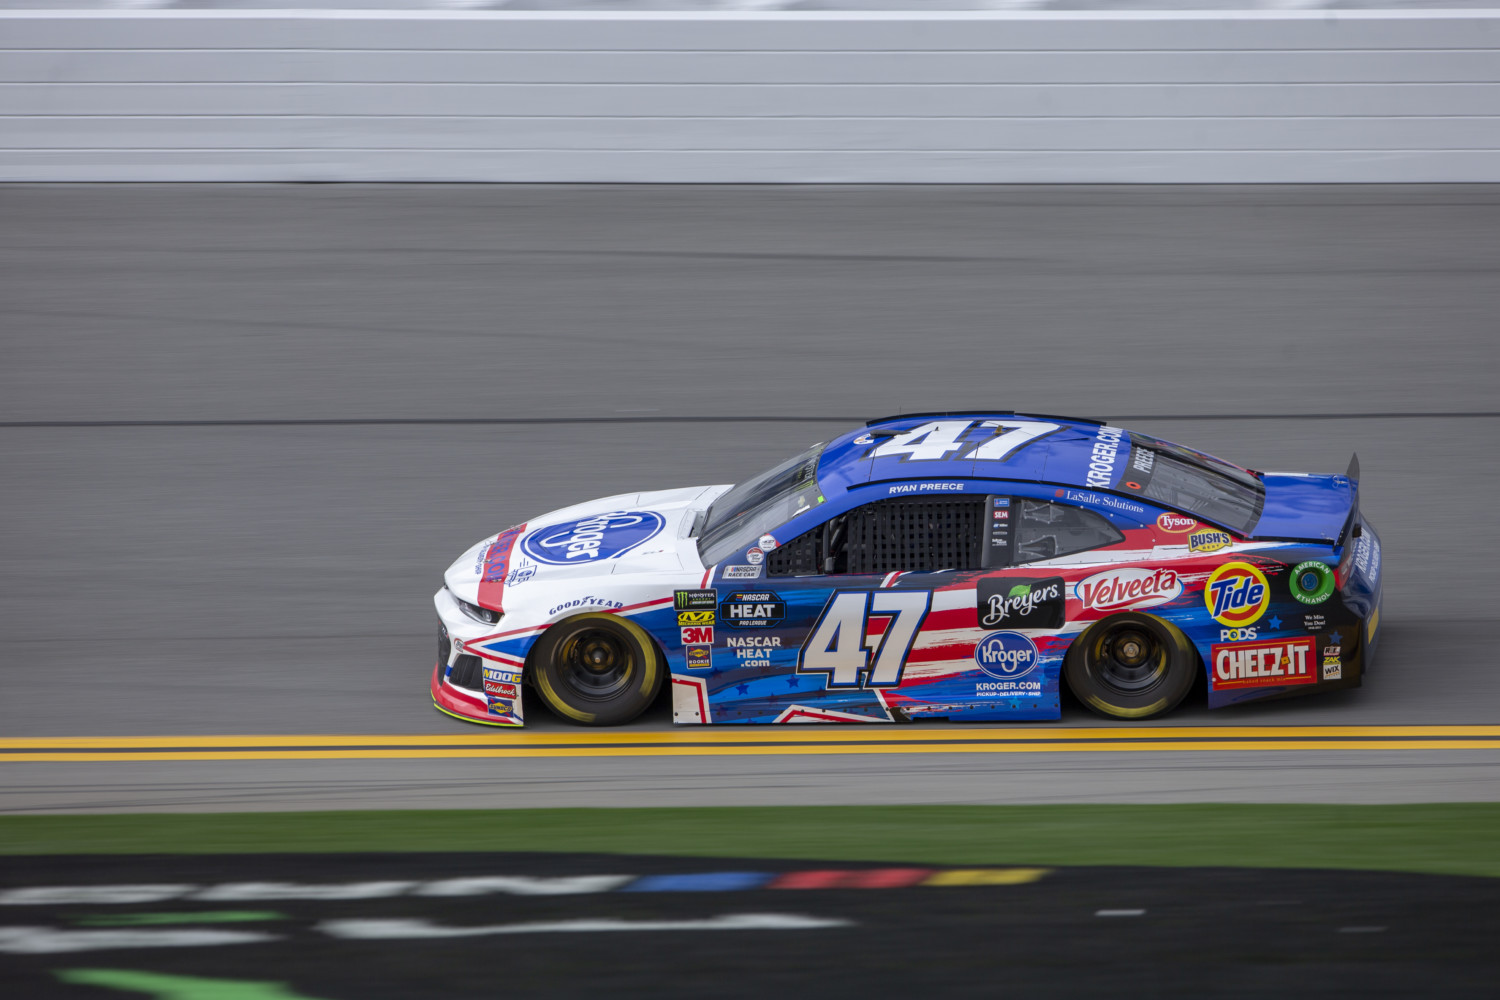 Preece Finishes Eighth in Daytona 500 with Incredible Wreck